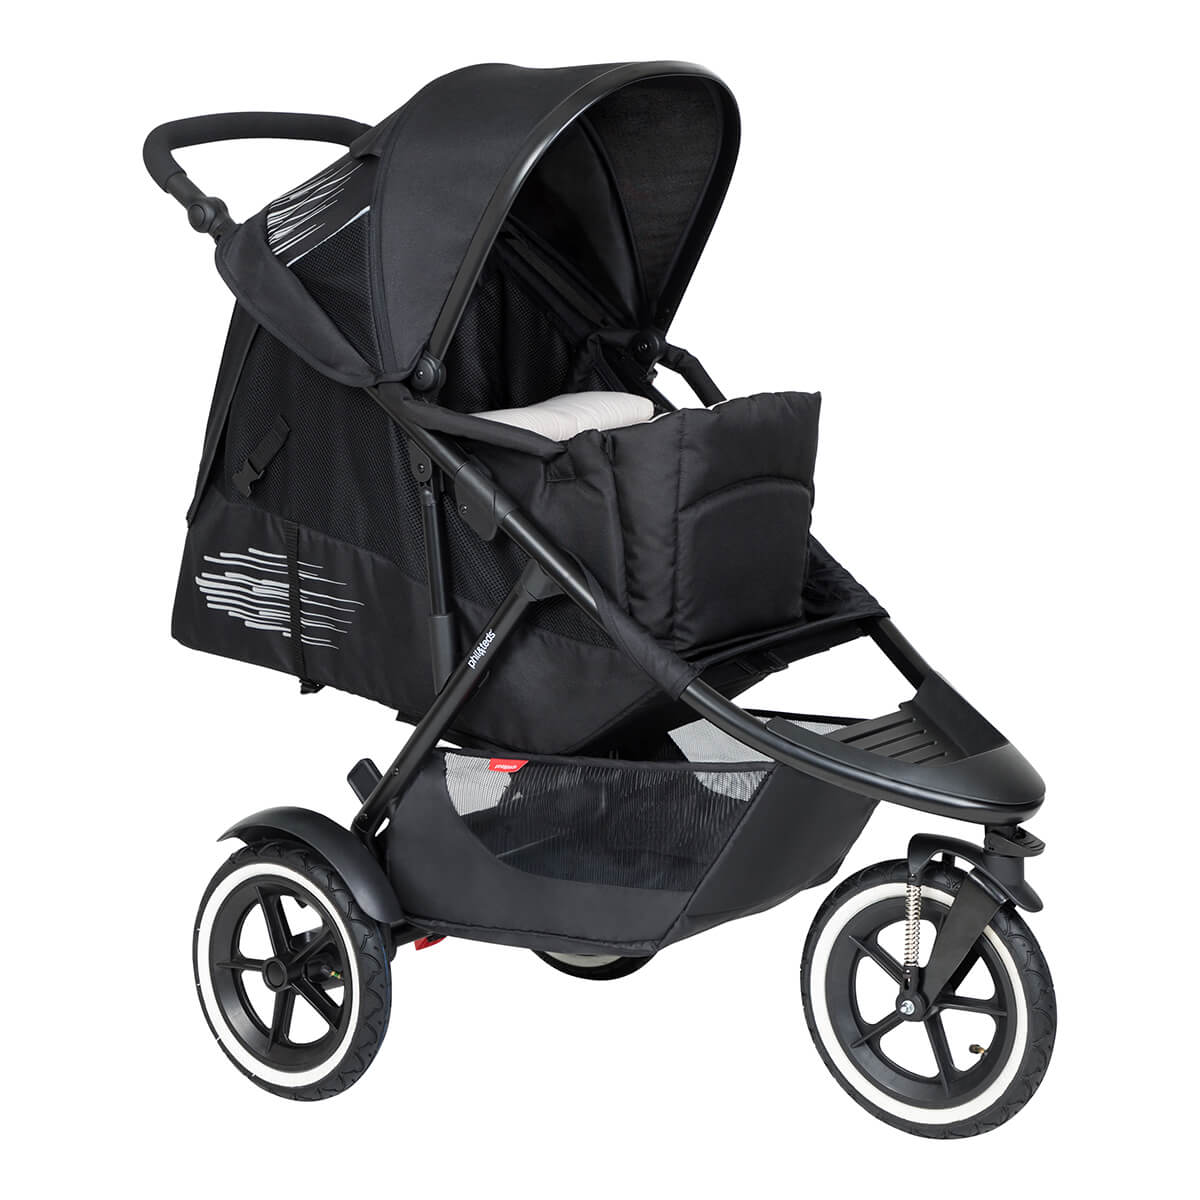 https://cdn.accentuate.io/4546157379689/19119322529897/philteds-sport-buggy-with-cocoon-full-recline-v1625778187470.jpg?1200x1200